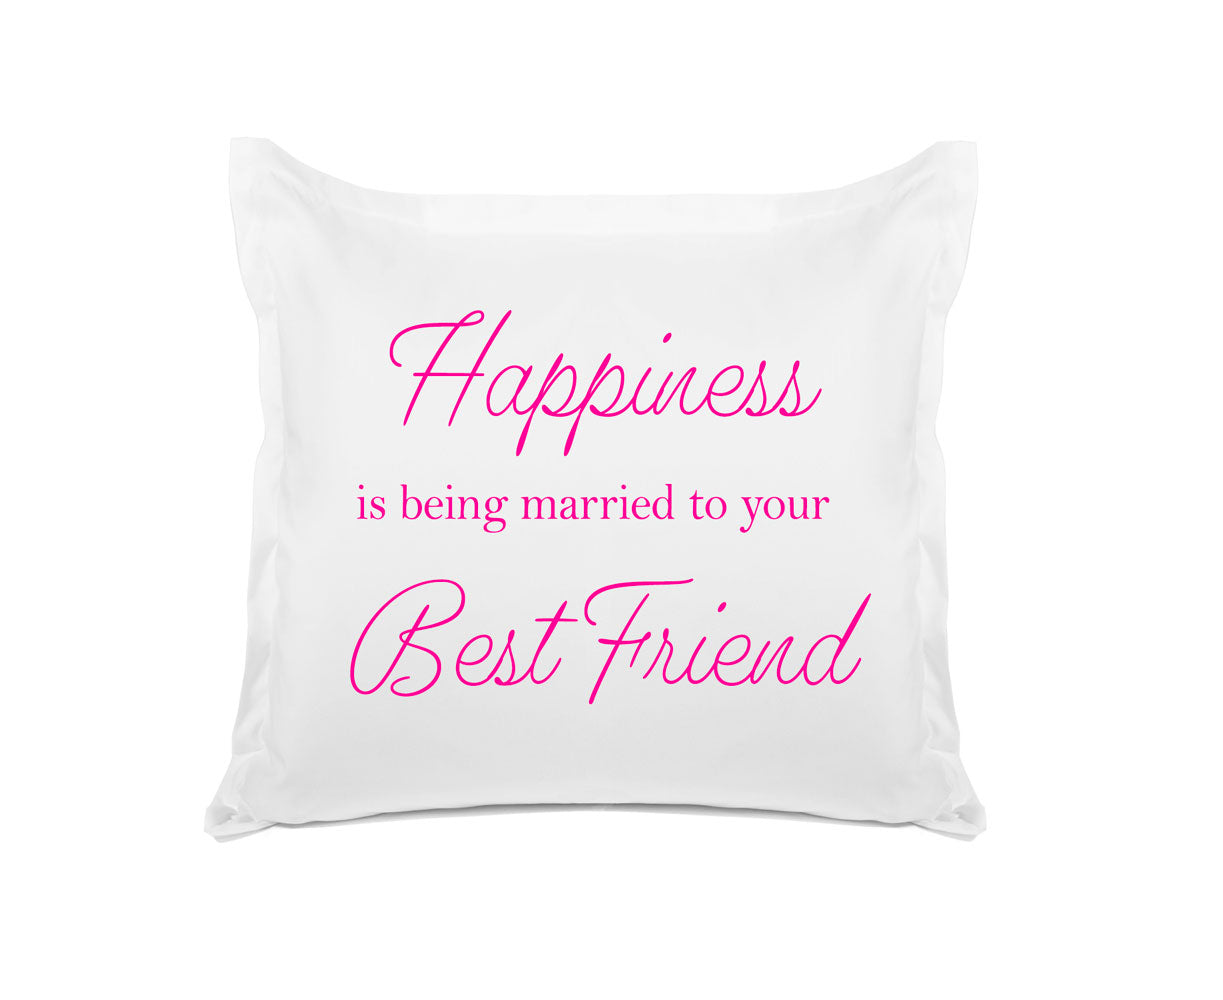 happiness is being married inspirational quotes pillowcases di